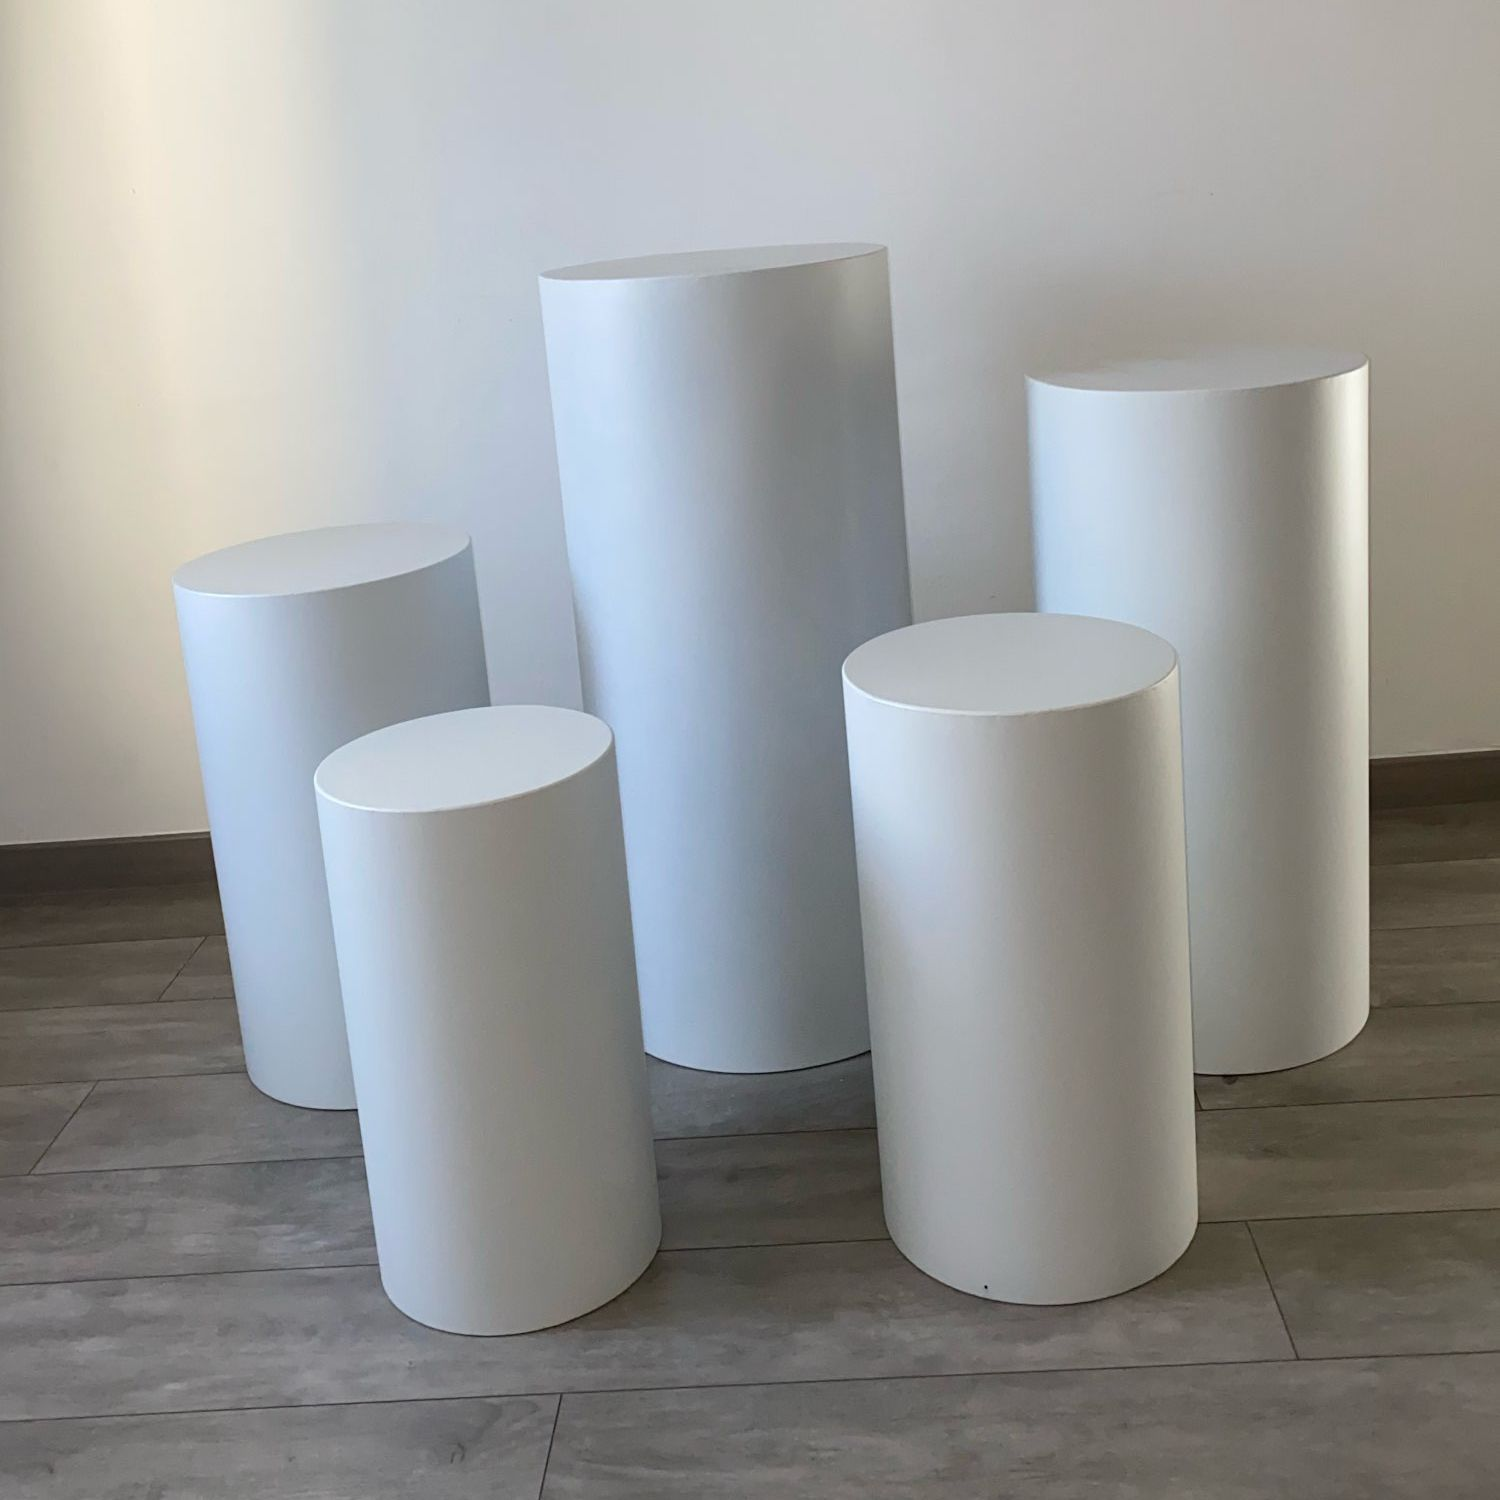 White New products Round Cylinder Pedestal Display Art Decor Plinths Pillars for DIY Wedding Decorations Holiday Party